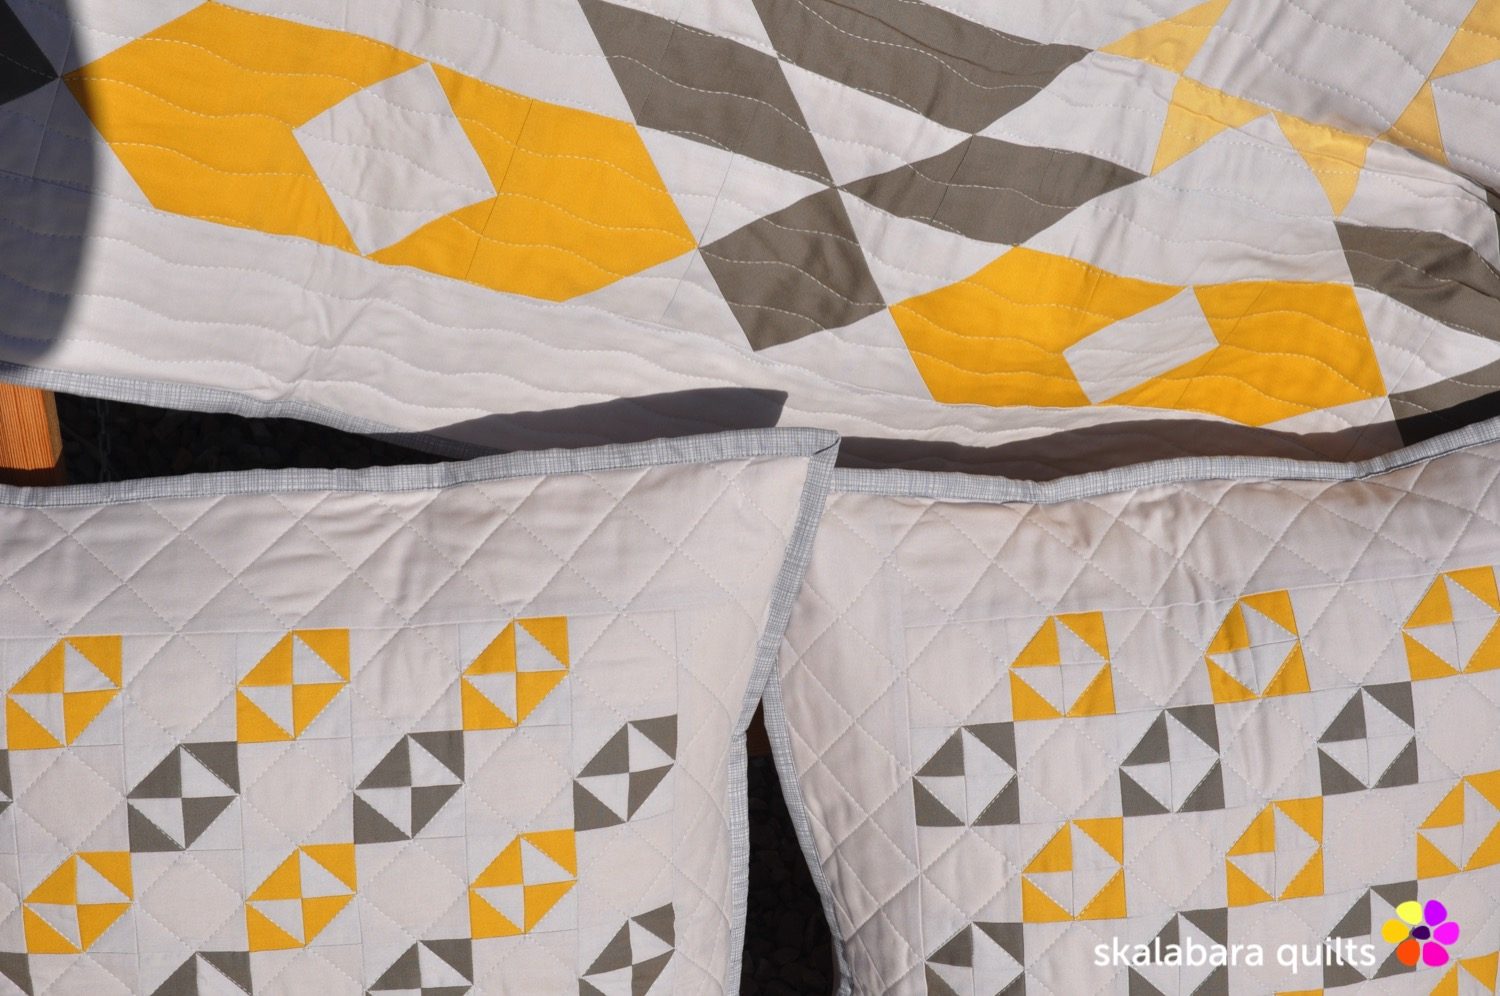 matching cushion covers to atmosphere quilt - skalabara quilts